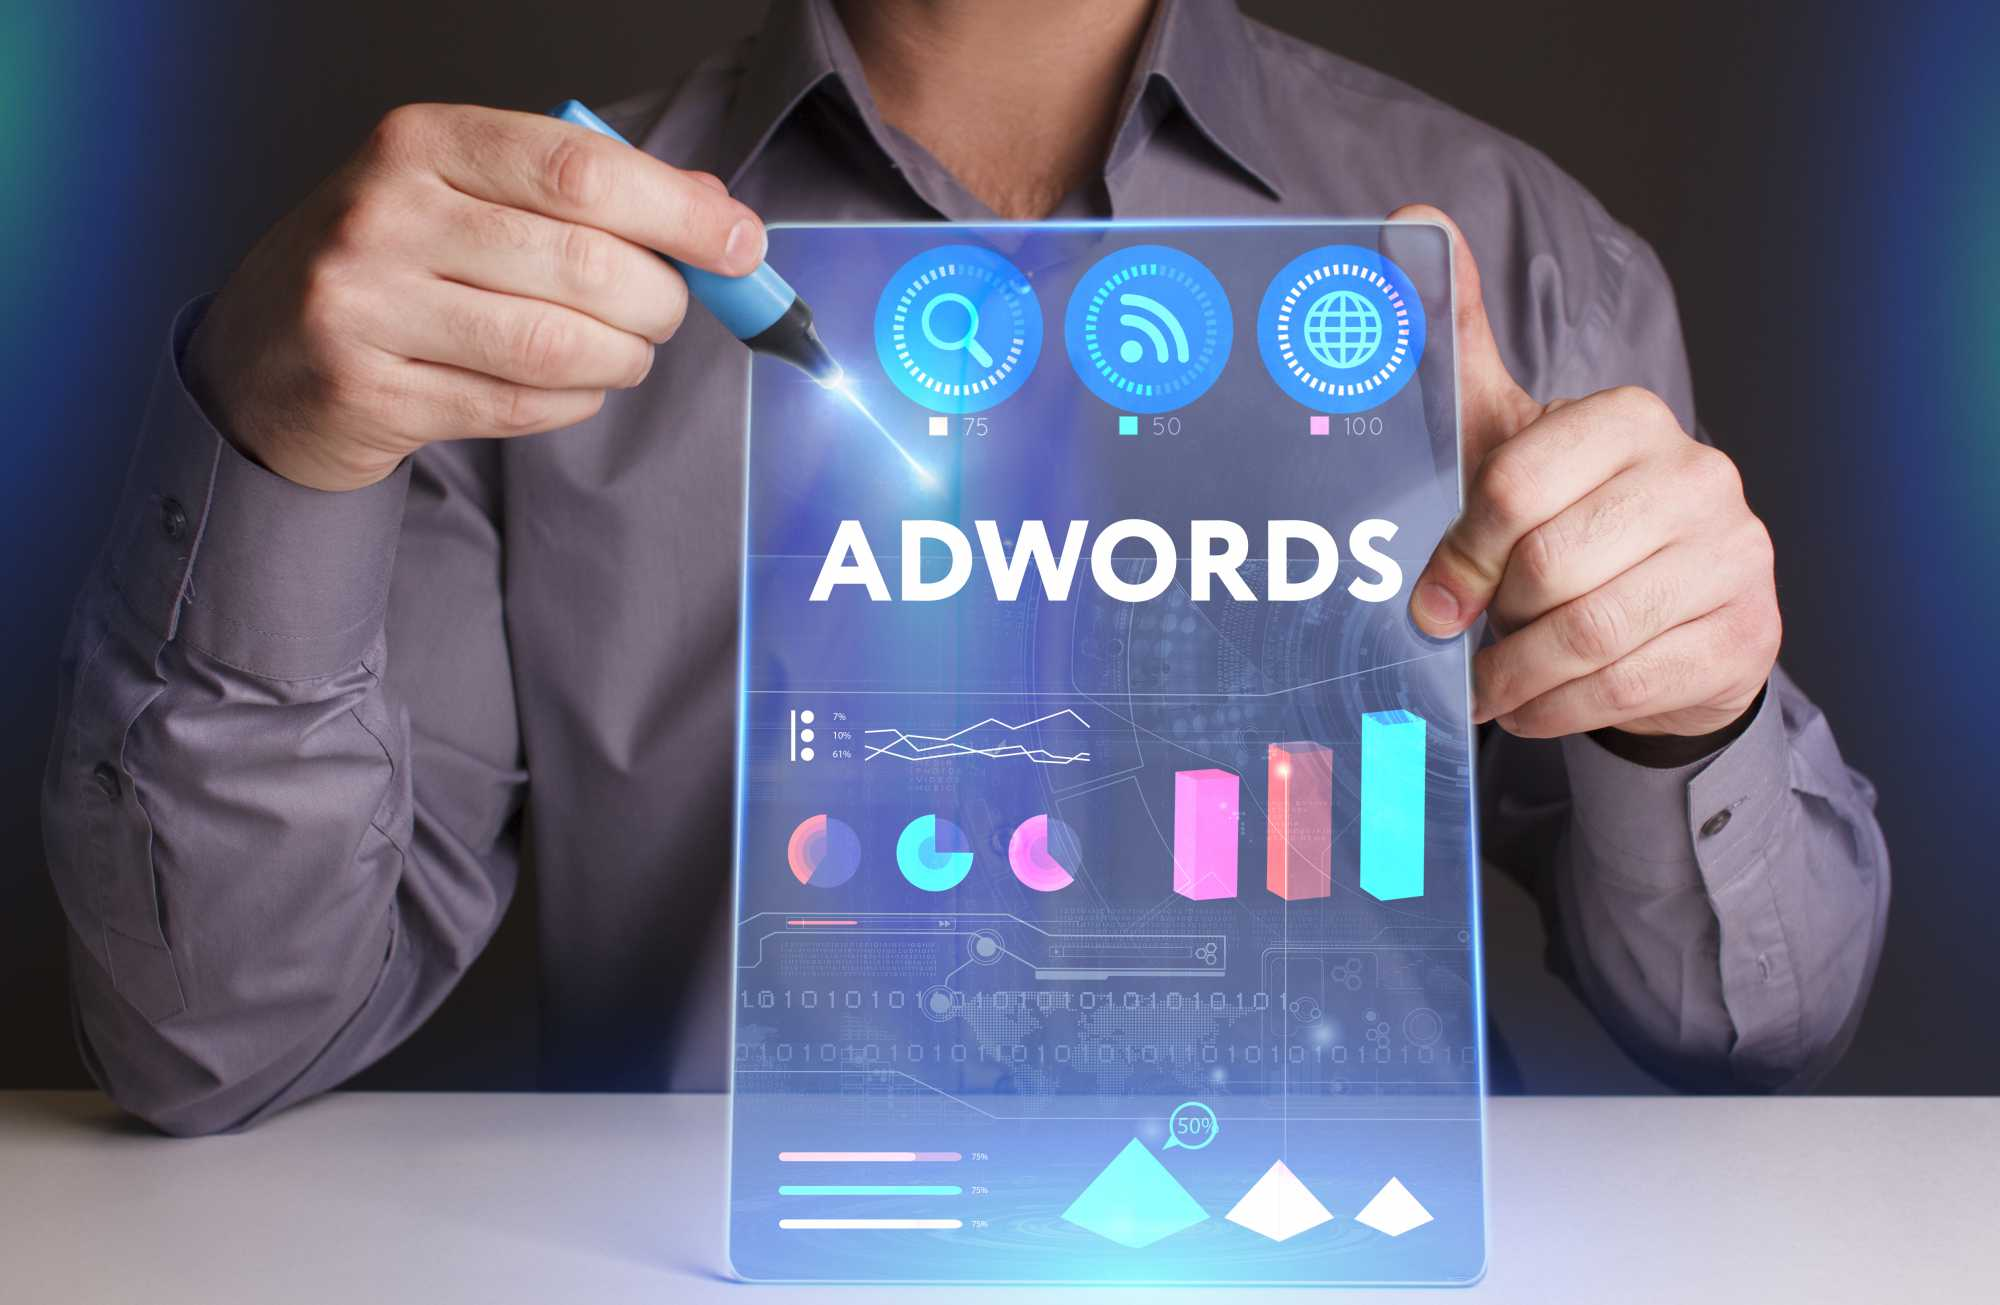 Agence Google Adwords Luxembourg - Domino Communication